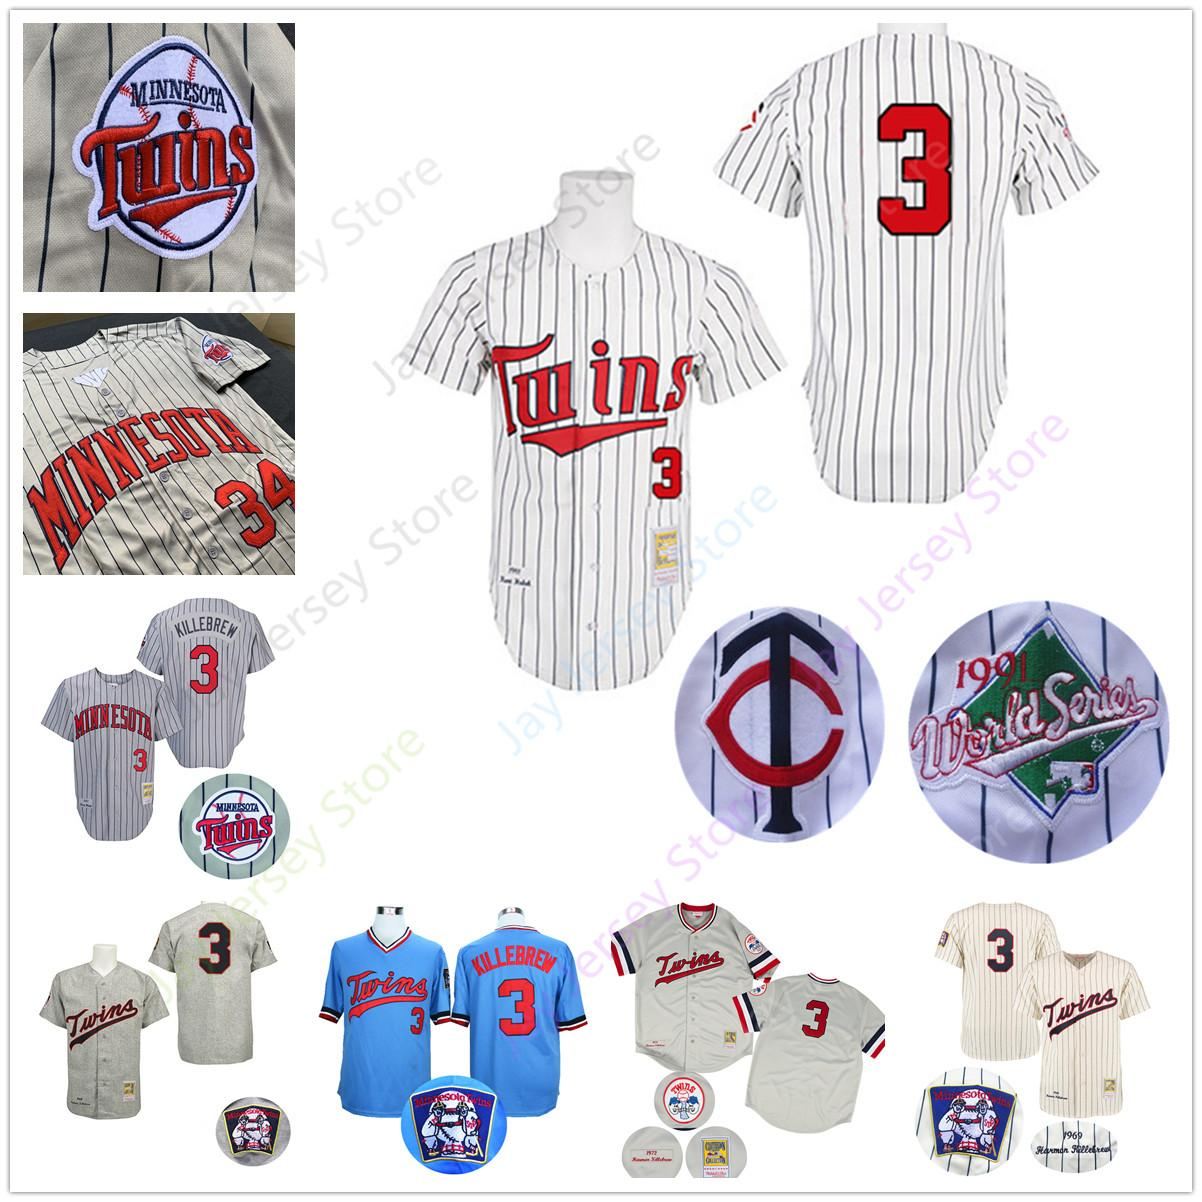 cd1d10cc0bd 2019 Men Harmon Killebrew Jersey Twins 1991 WS World Series Minnesota  Baseball Jerseys Grey Pinstripe White Blue Cream Pullover From Morejersey,  ...